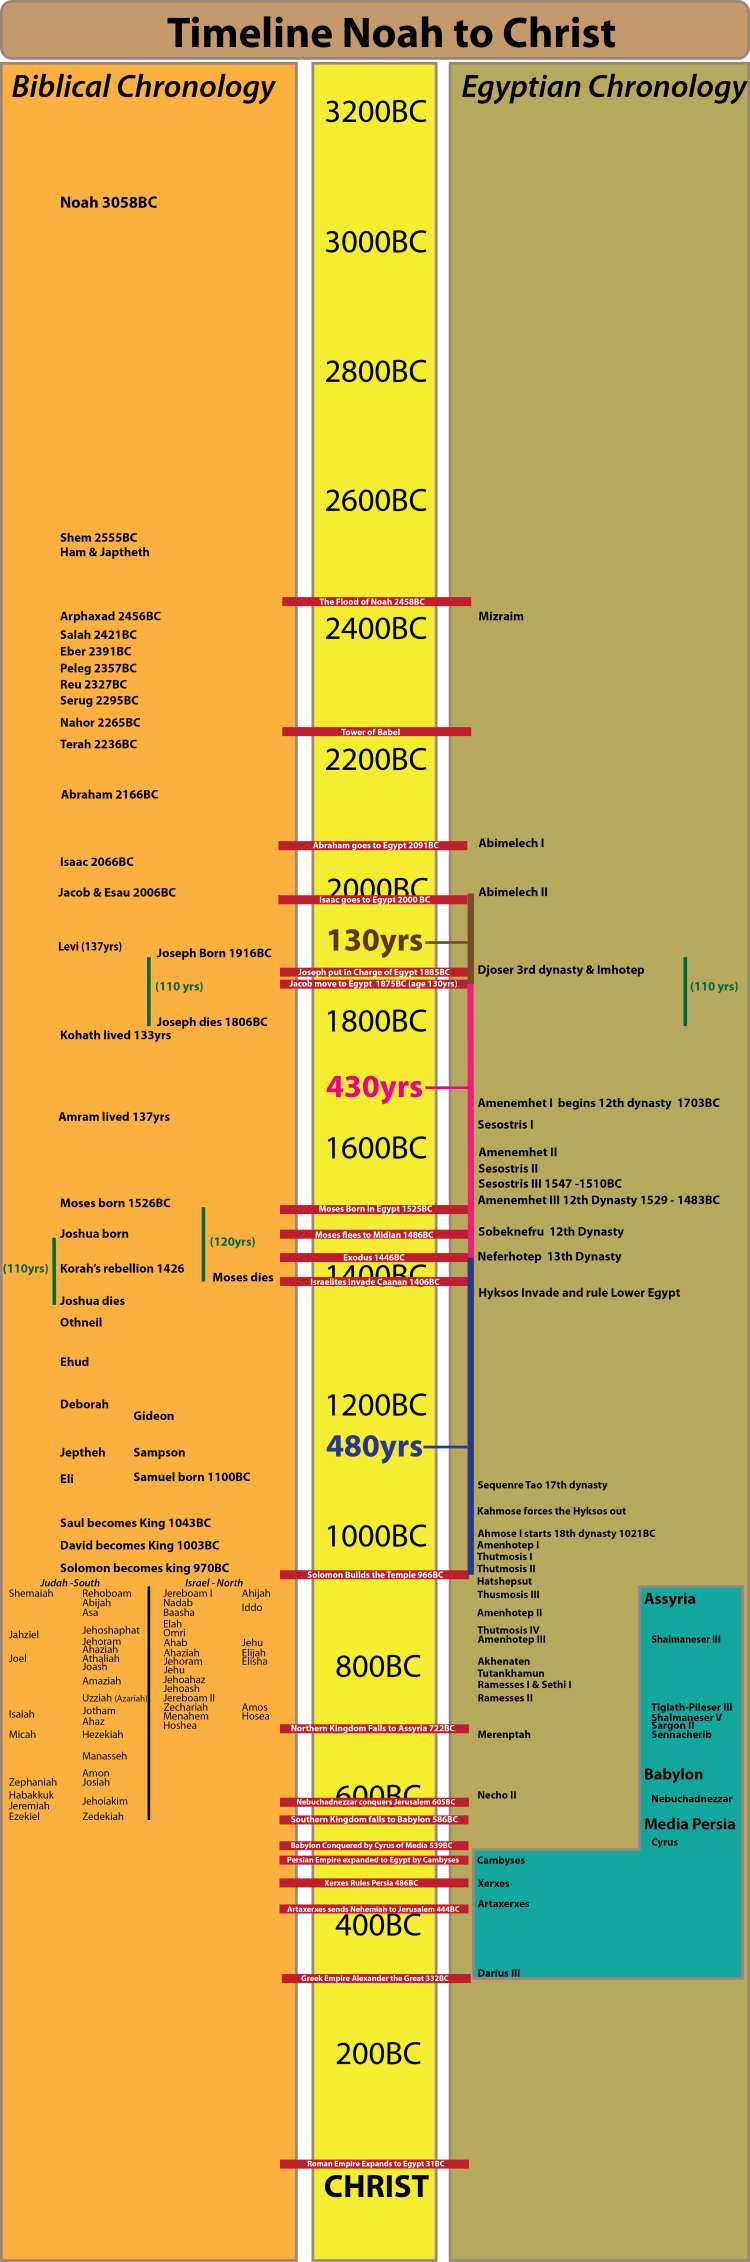 Timeline from Noah to Christ. Down's revised Egyptian Chronology. Biblical Chronology with a long sojourn.